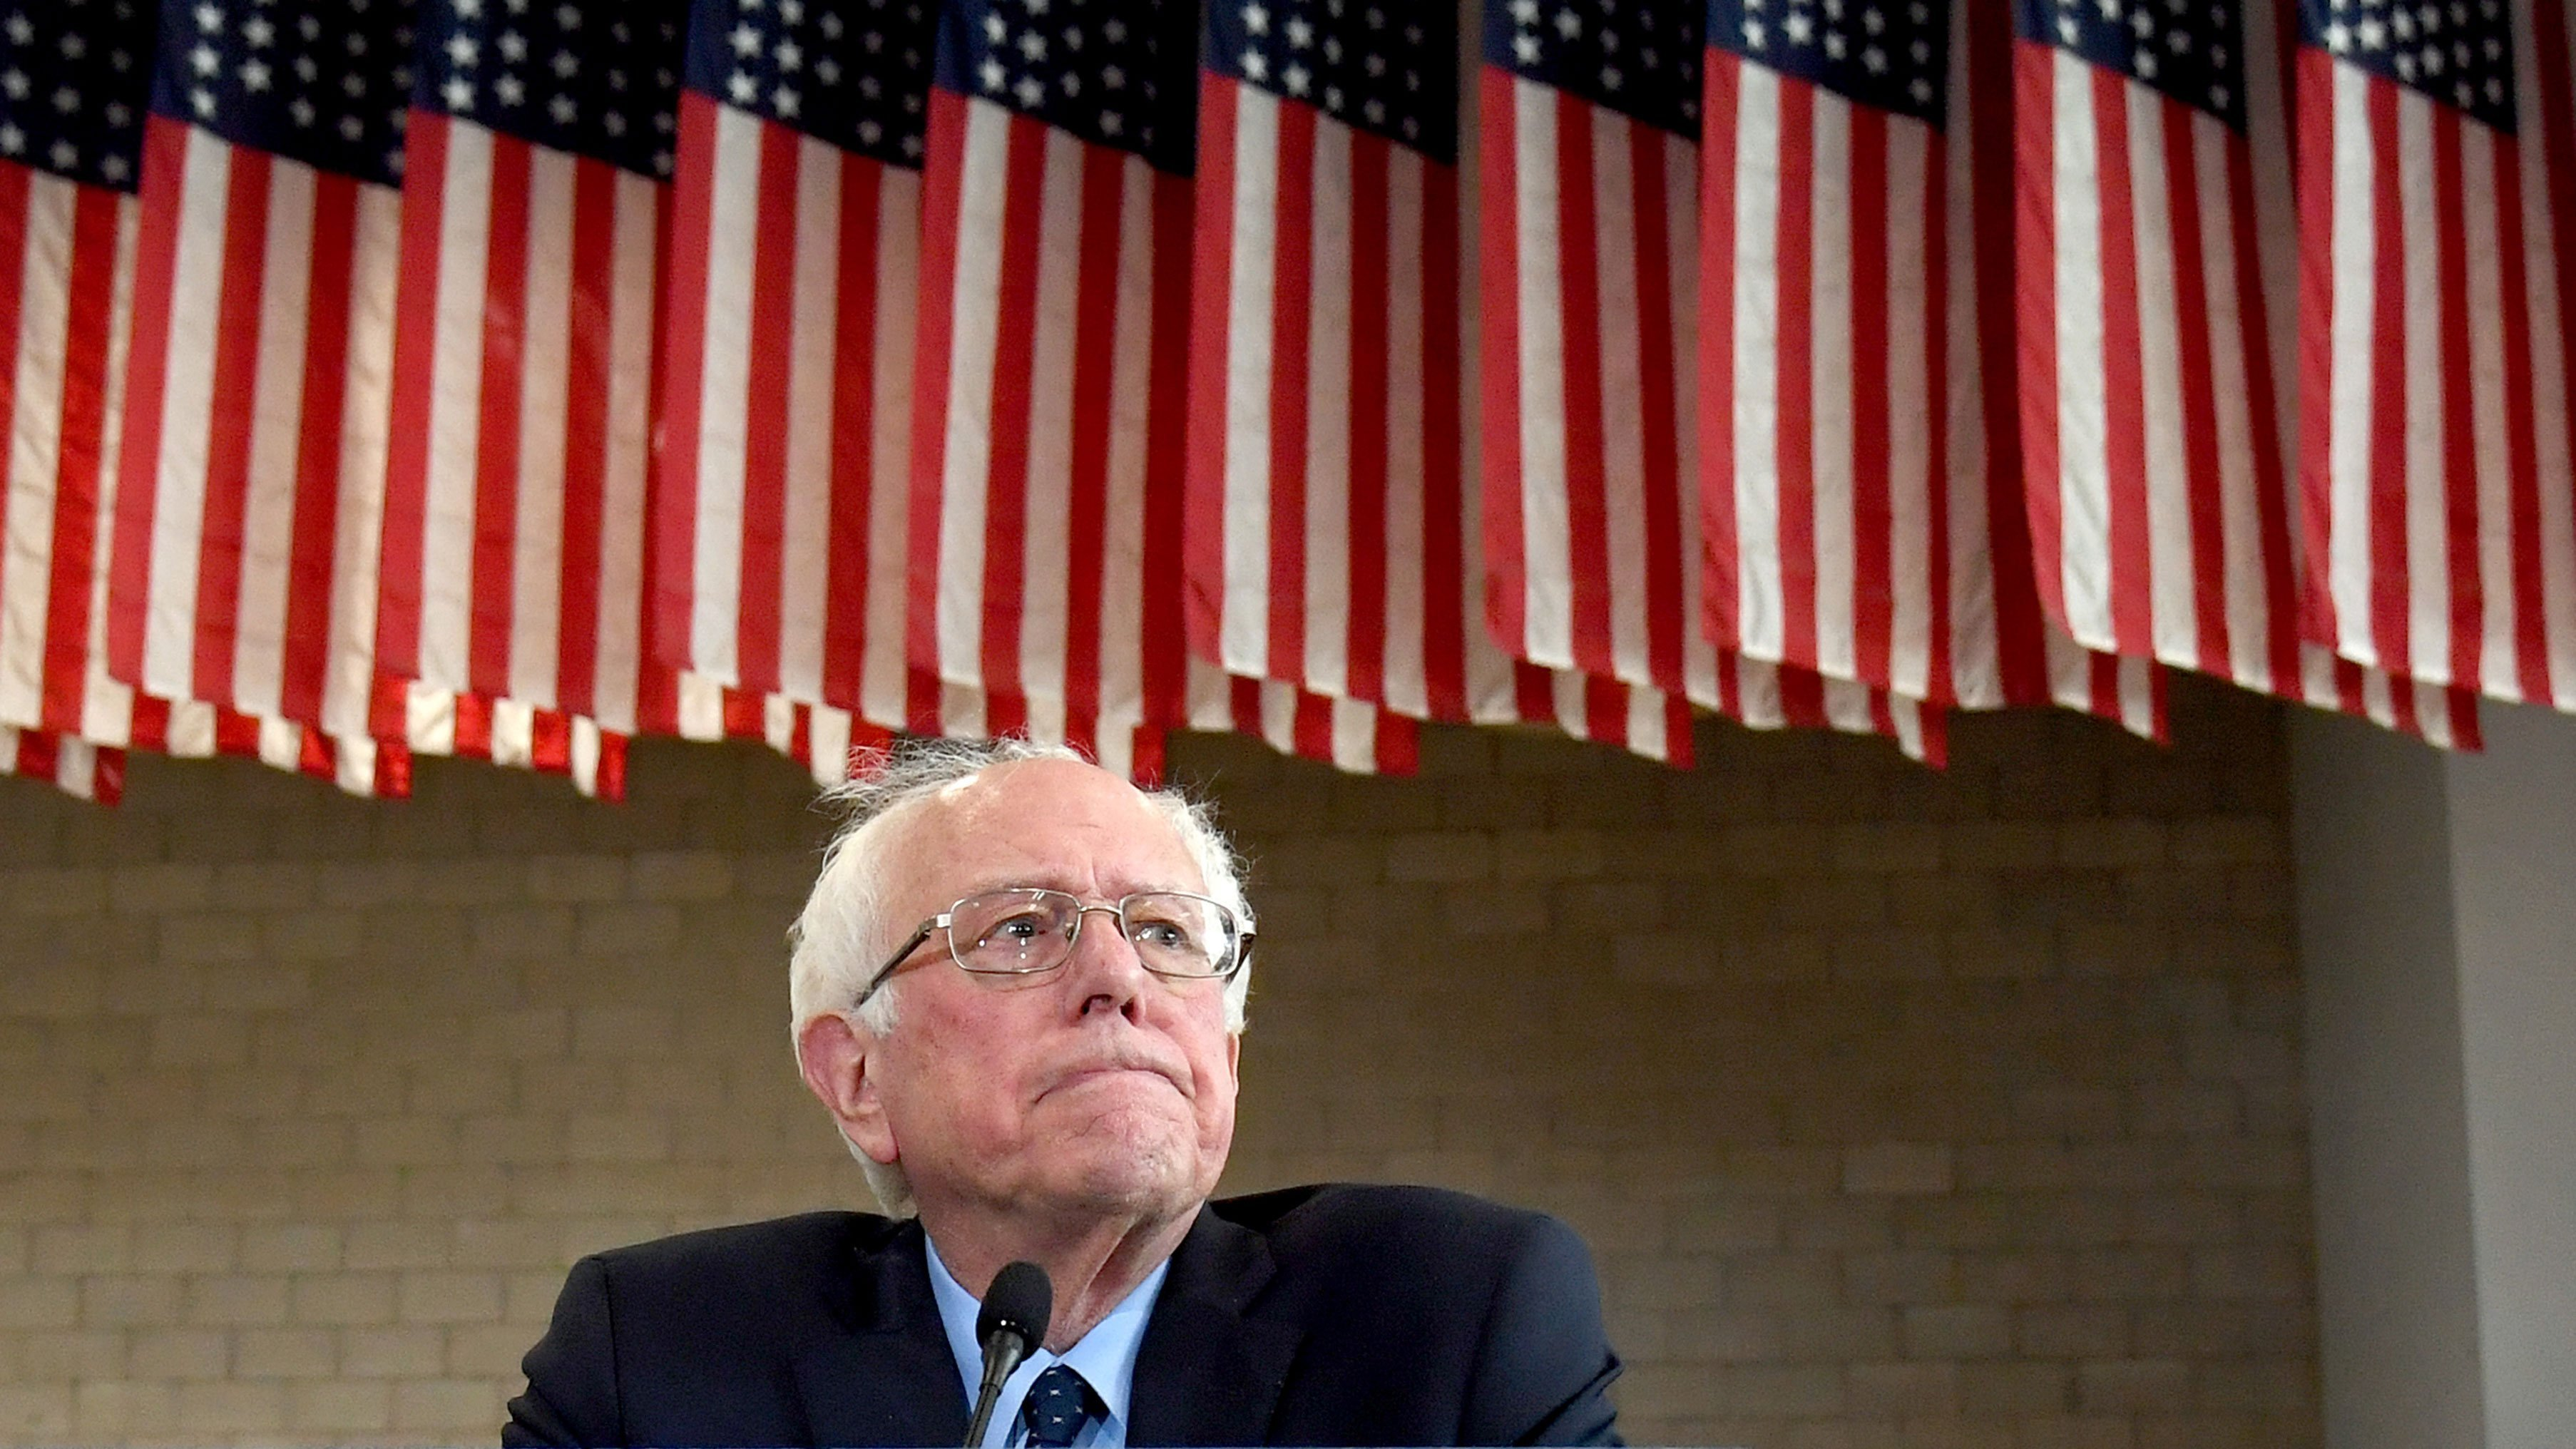 Bernie Sanders introduces labor plan to broaden union power